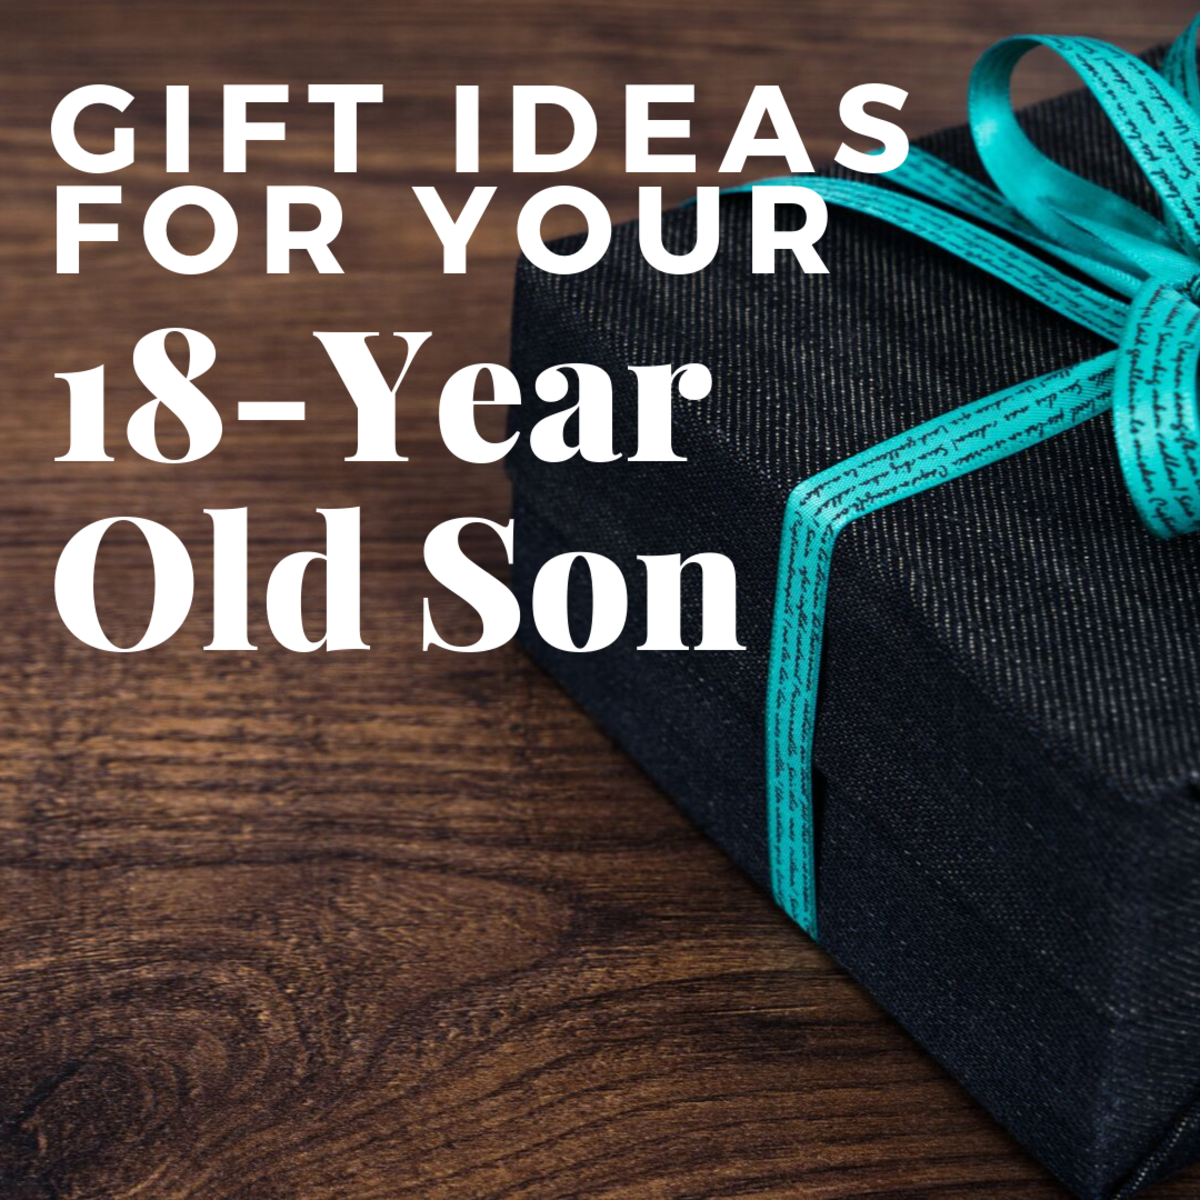 What Can I Give My 18-Year-Old Son for His Birthday?